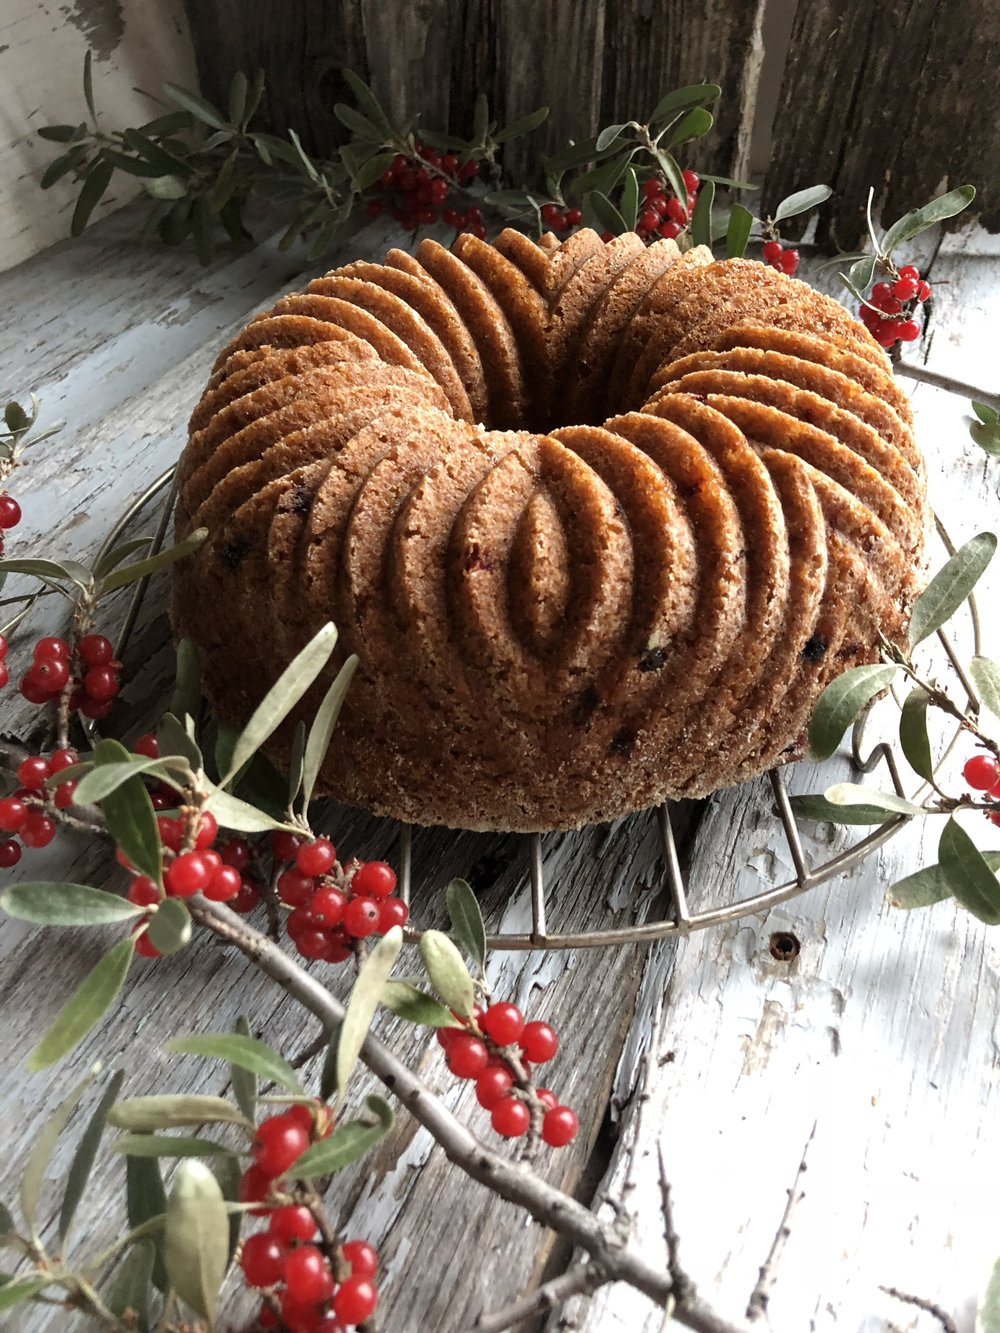 gluten free bundt cake with pumpkin and buffalo berries